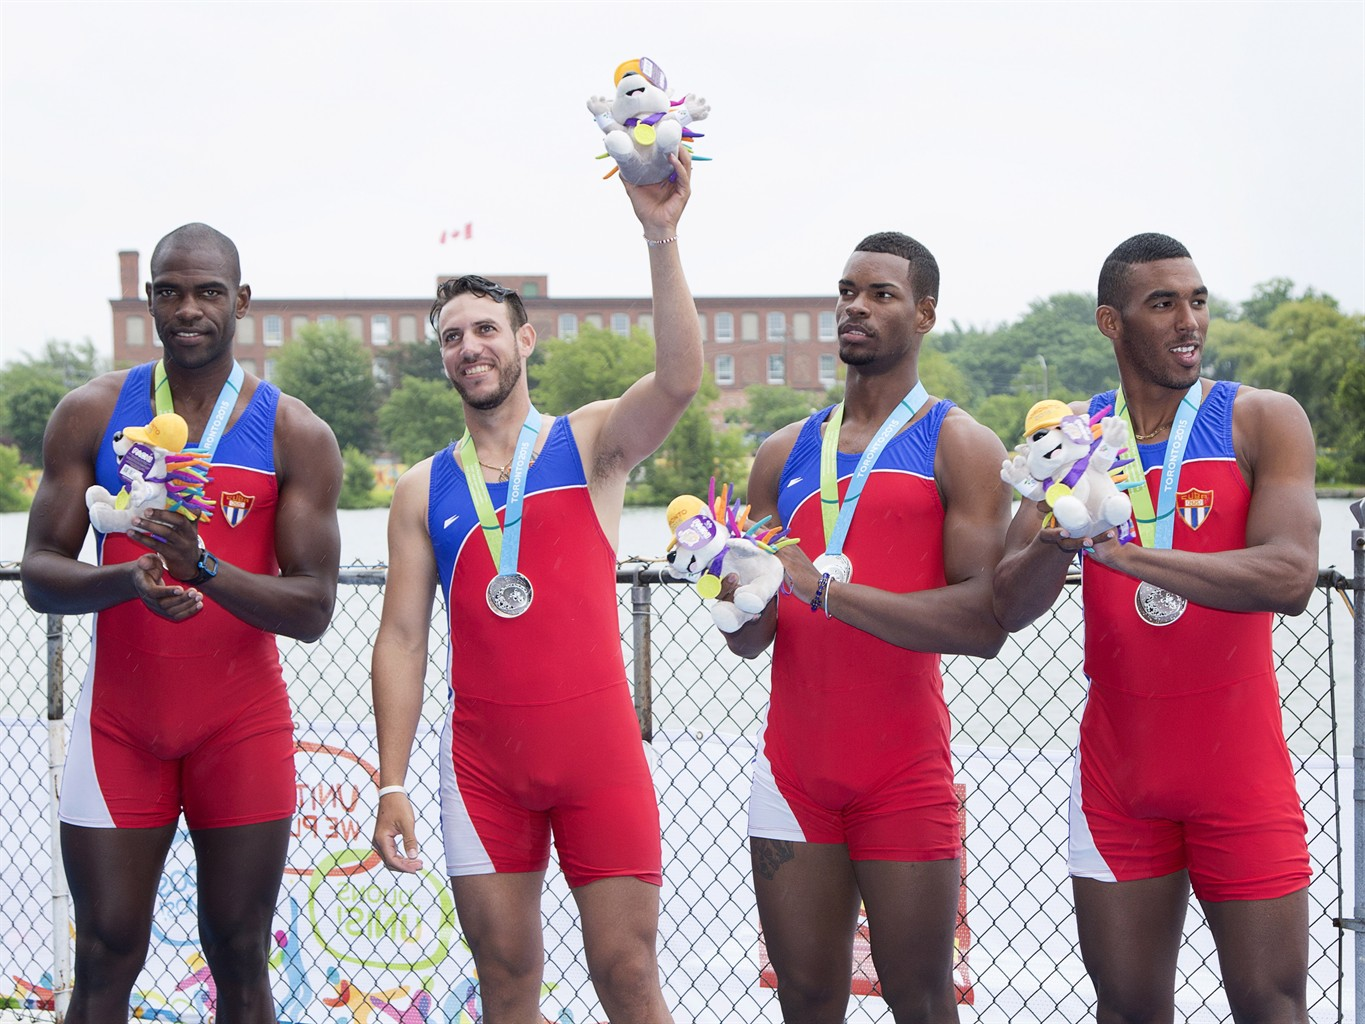 Cuban coach says four members of rowing team defect from Pan